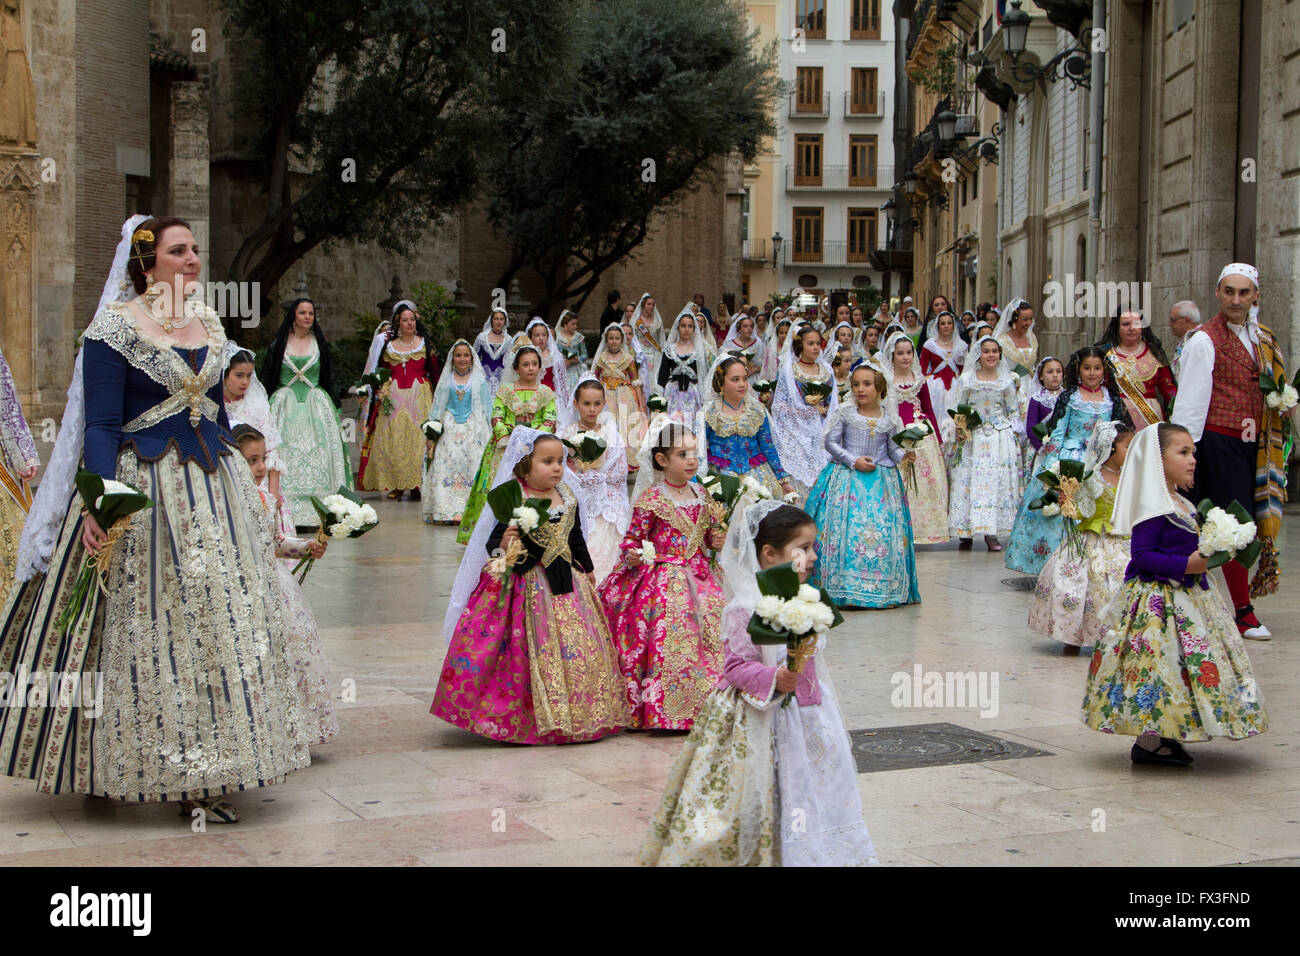 Flower offering procession honouring the holy Lady of Valencia, Valencia Spain - Stock Image